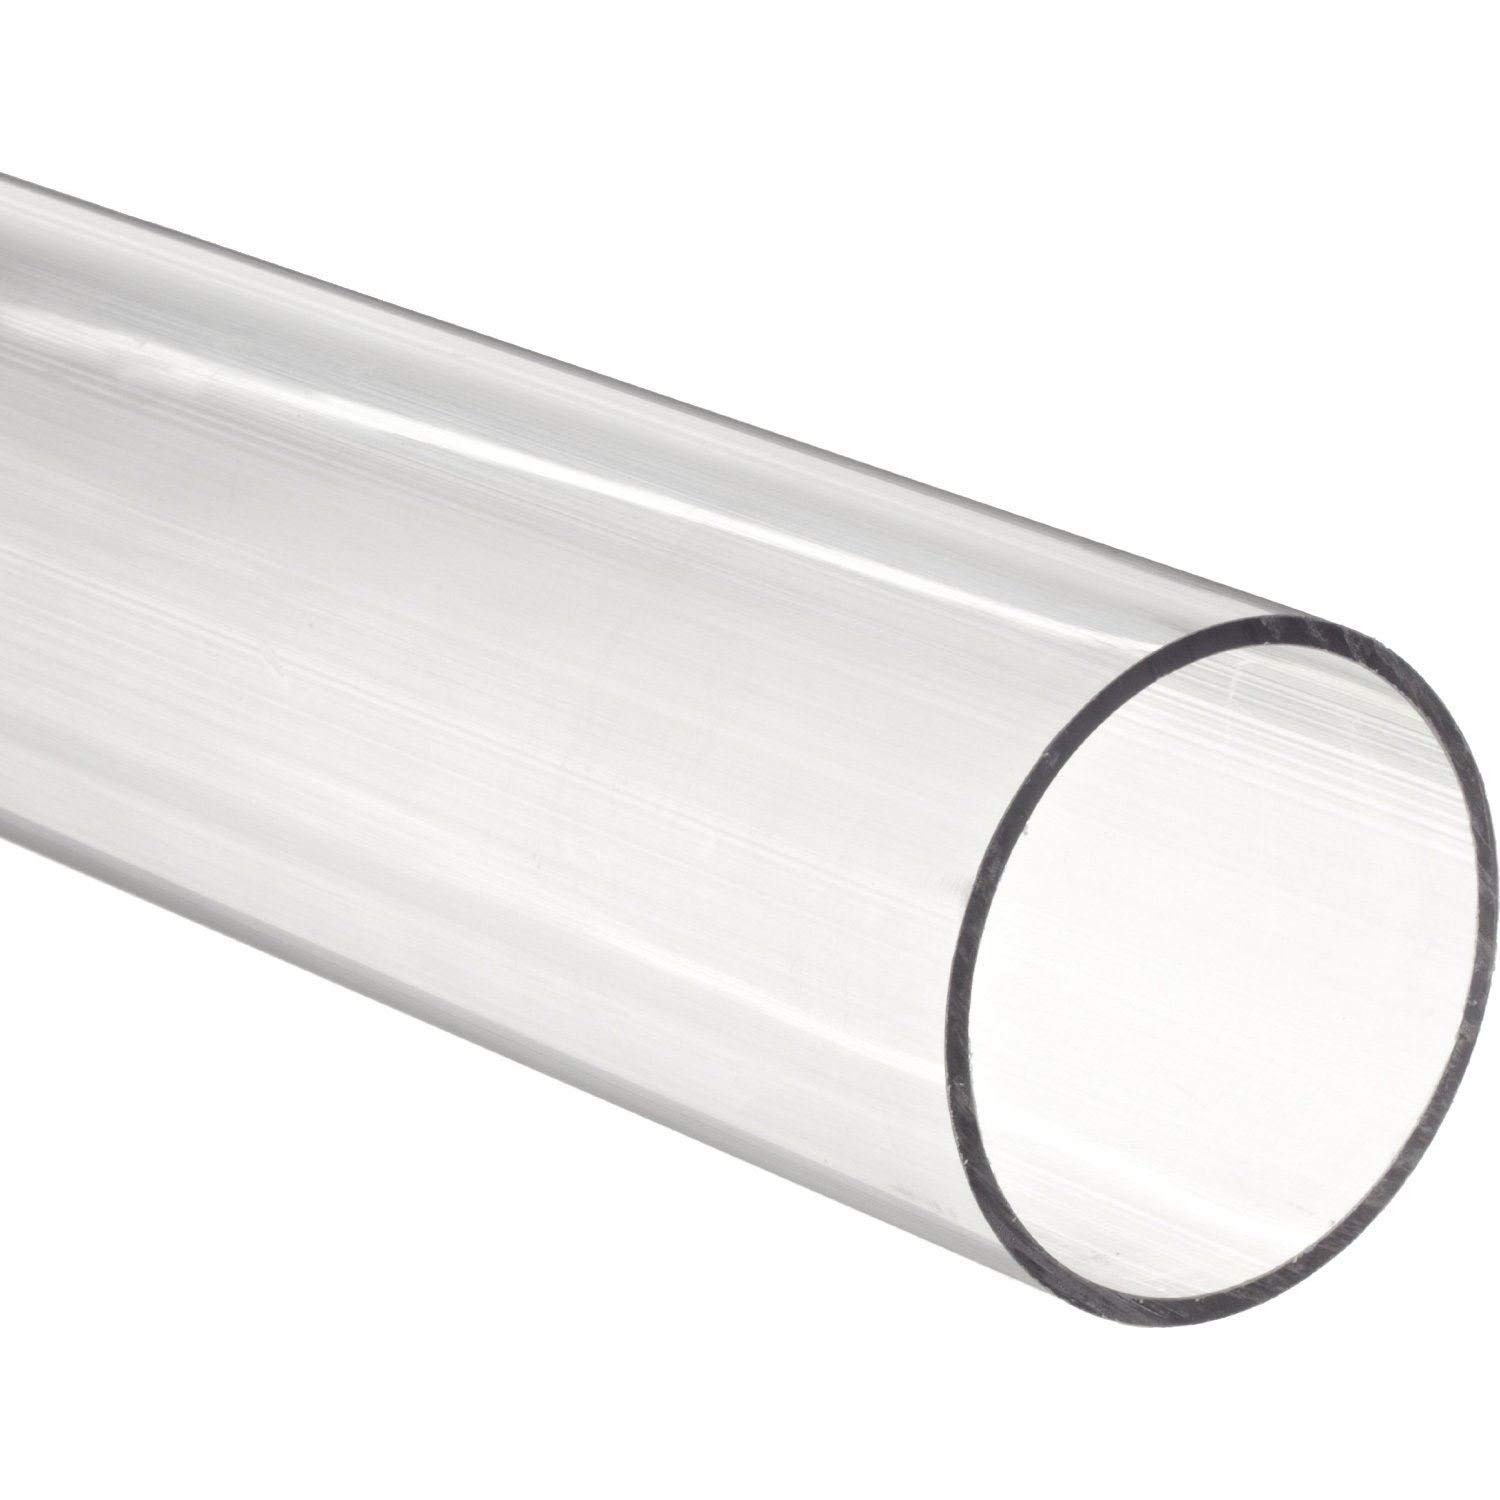 "4"" OD x 3 1//2/"" ID CLEAR ACRYLIC PLEXIGLASS TUBE 1//4/"" HEAVY WALL 72/"" LONG 6 FOOT"